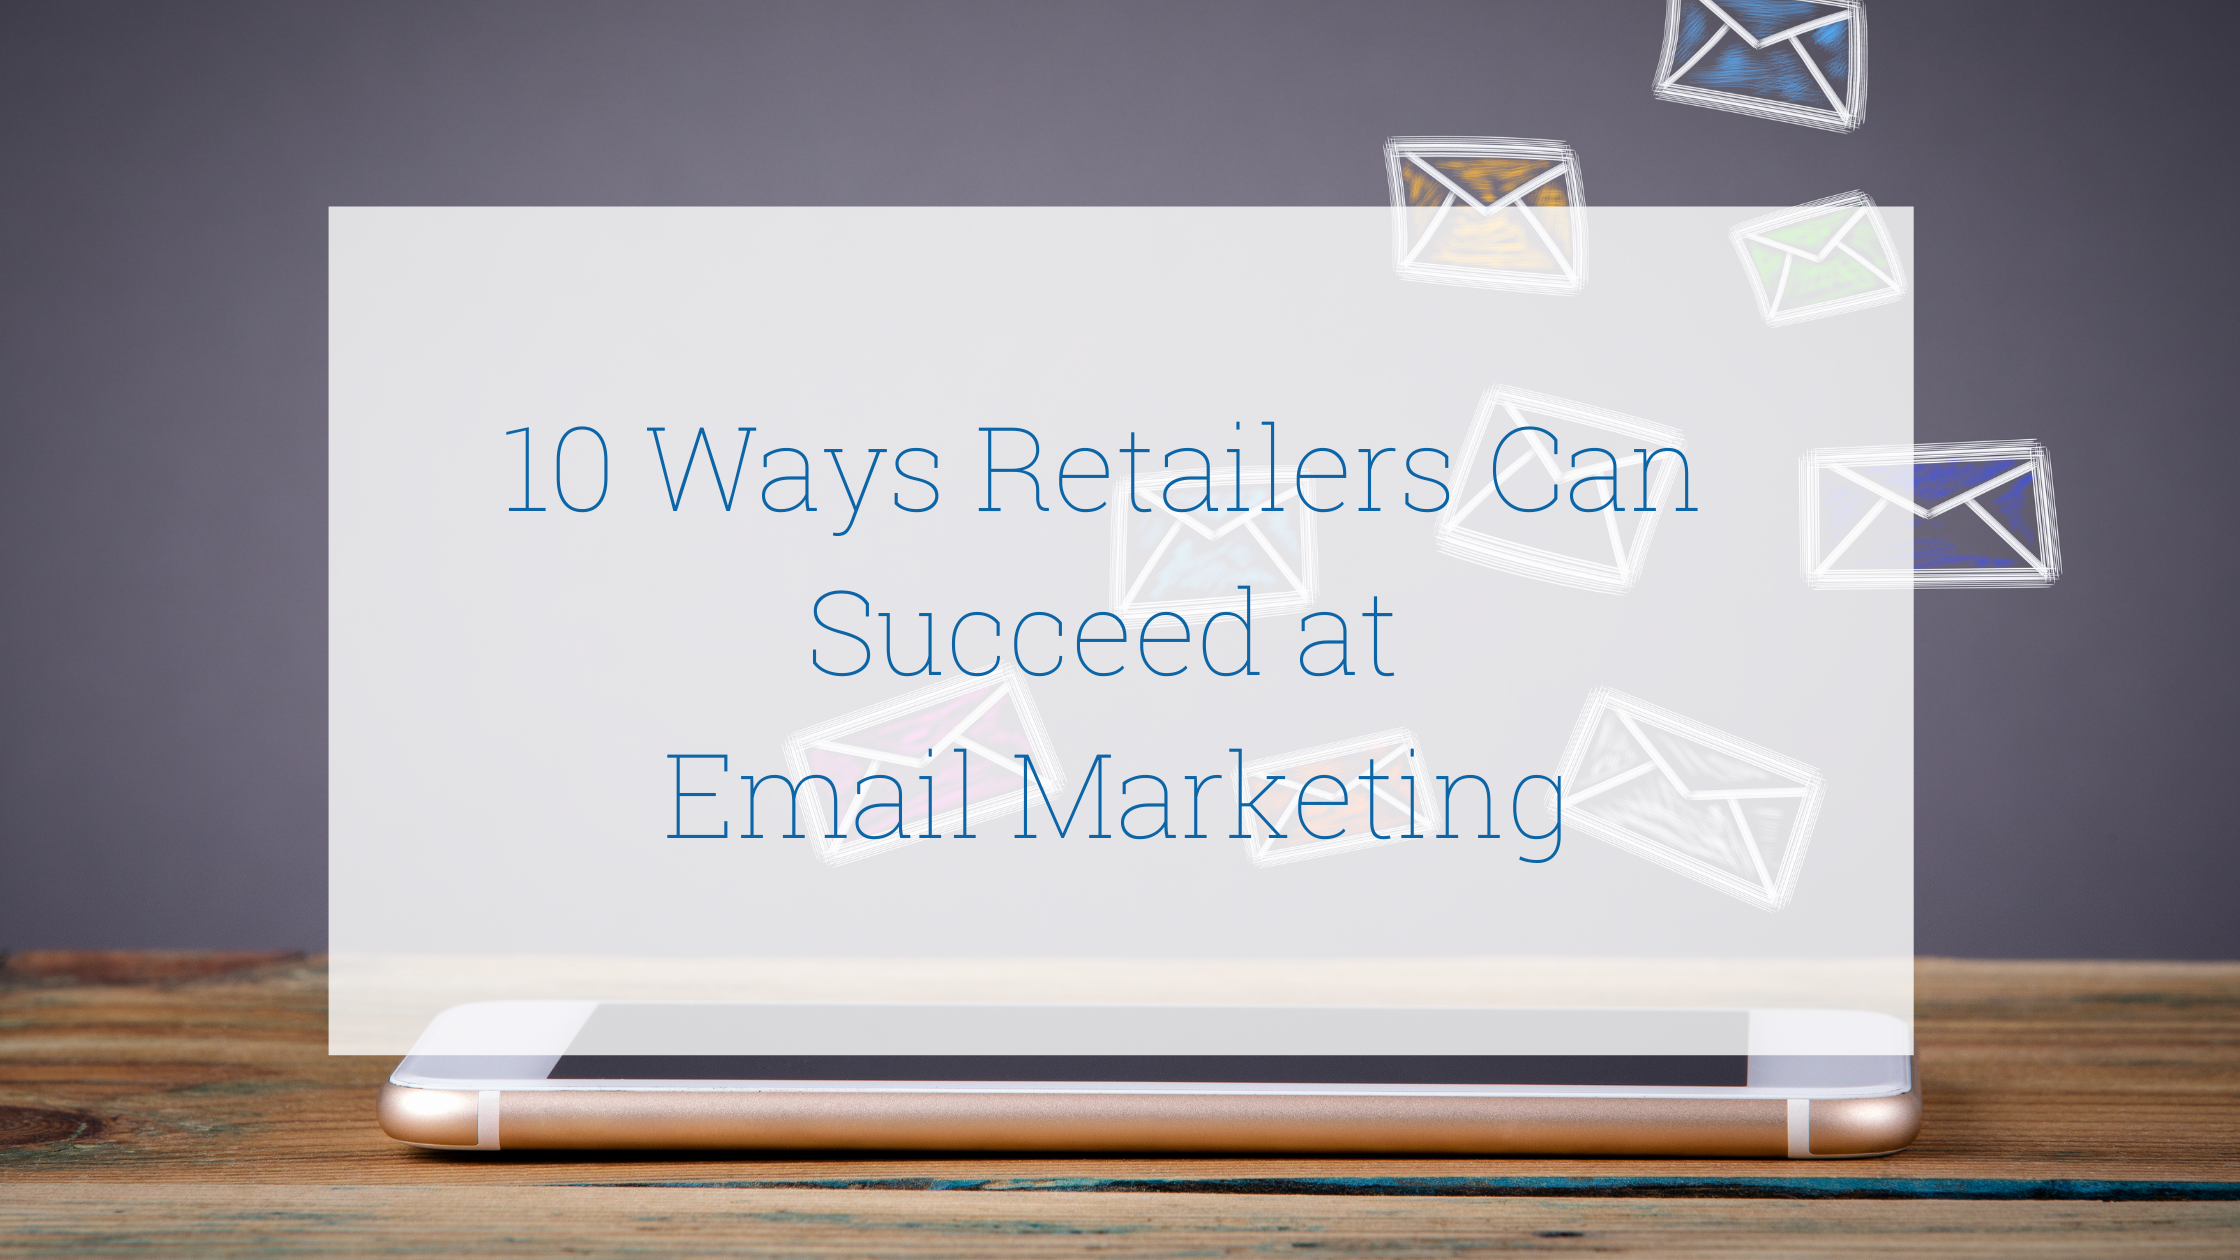 email marketing for retailers